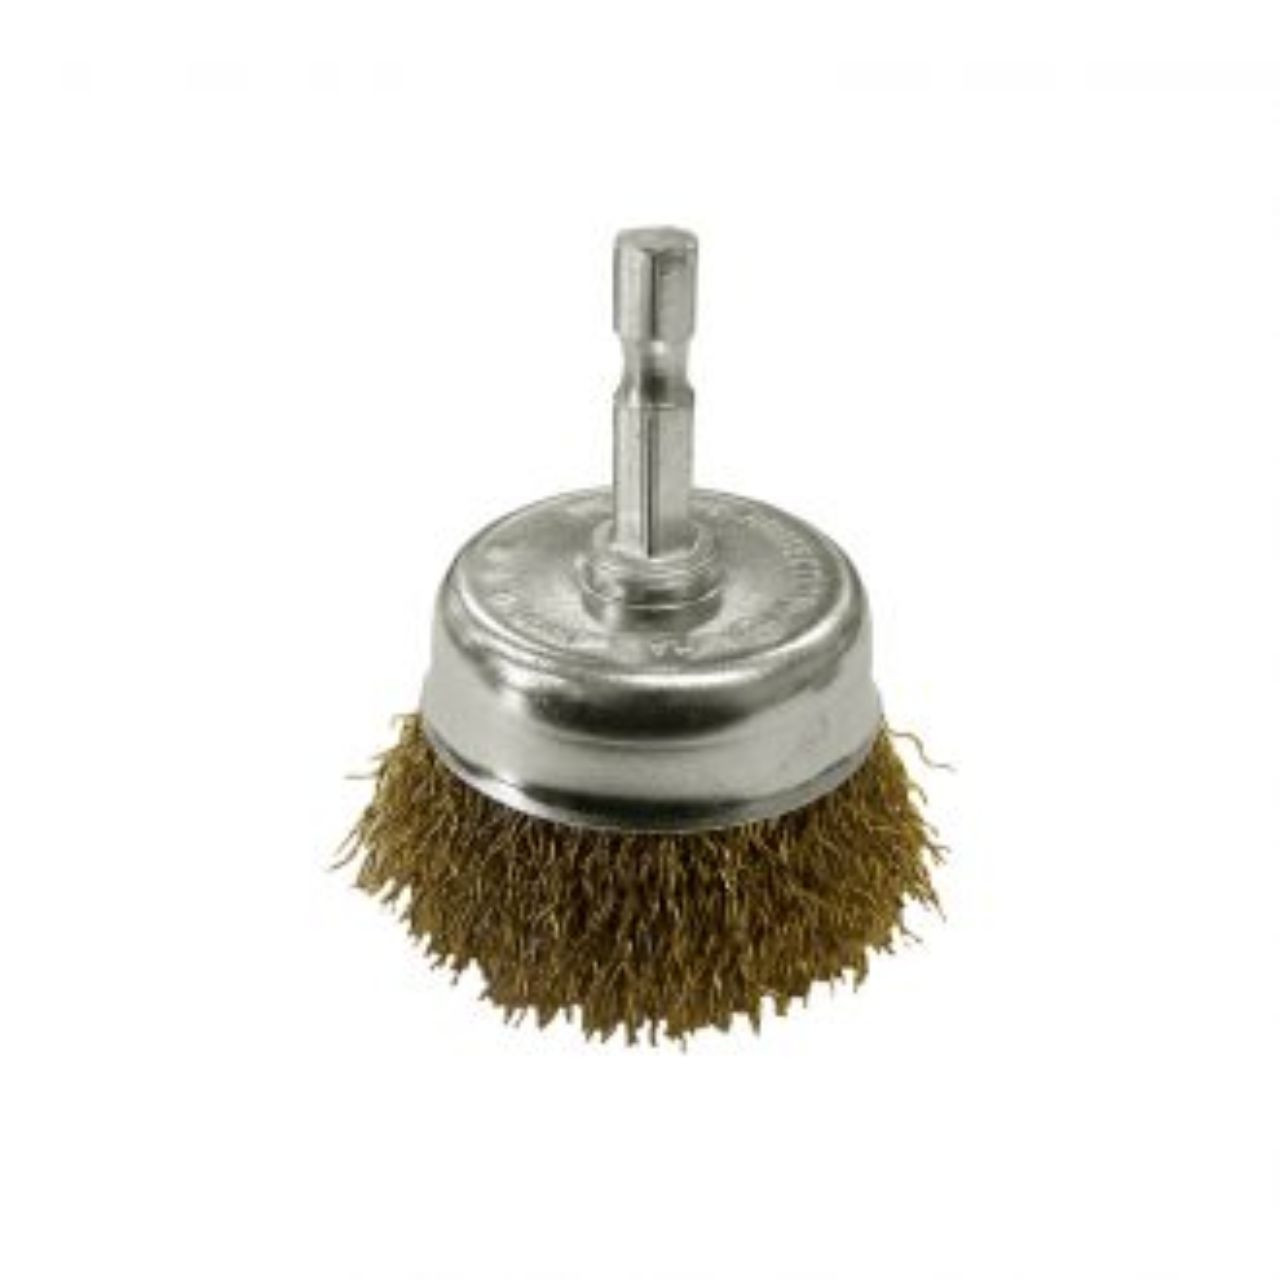 Josco Brumby 50mm Spindle Mount Crimped Steel Cup Brush